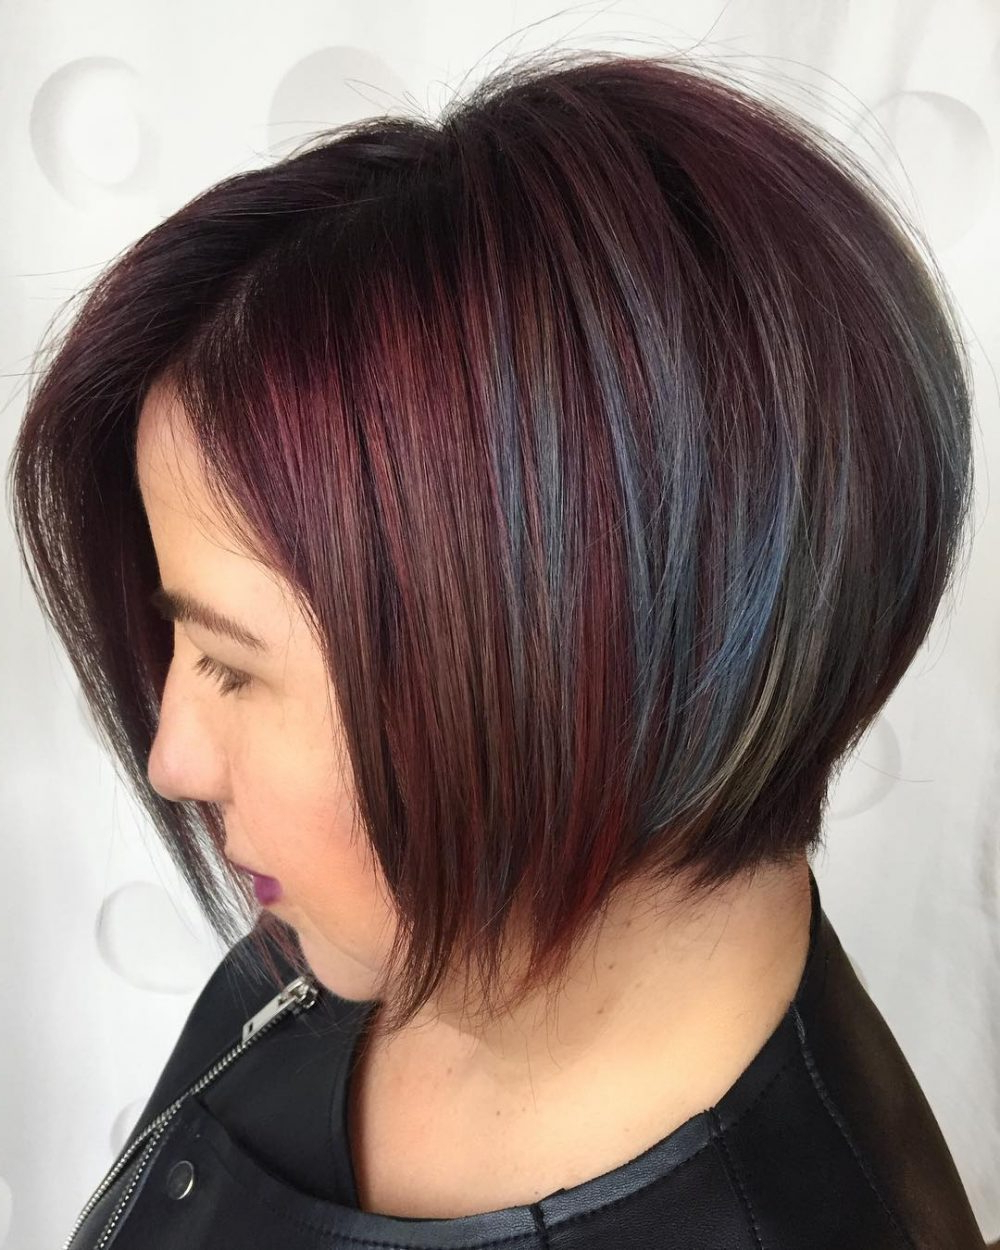 34 Greatest Short Haircuts And Hairstyles For Thick Hair For 2018 Inside Asymmetrical Haircuts For Thick Hair (View 13 of 20)